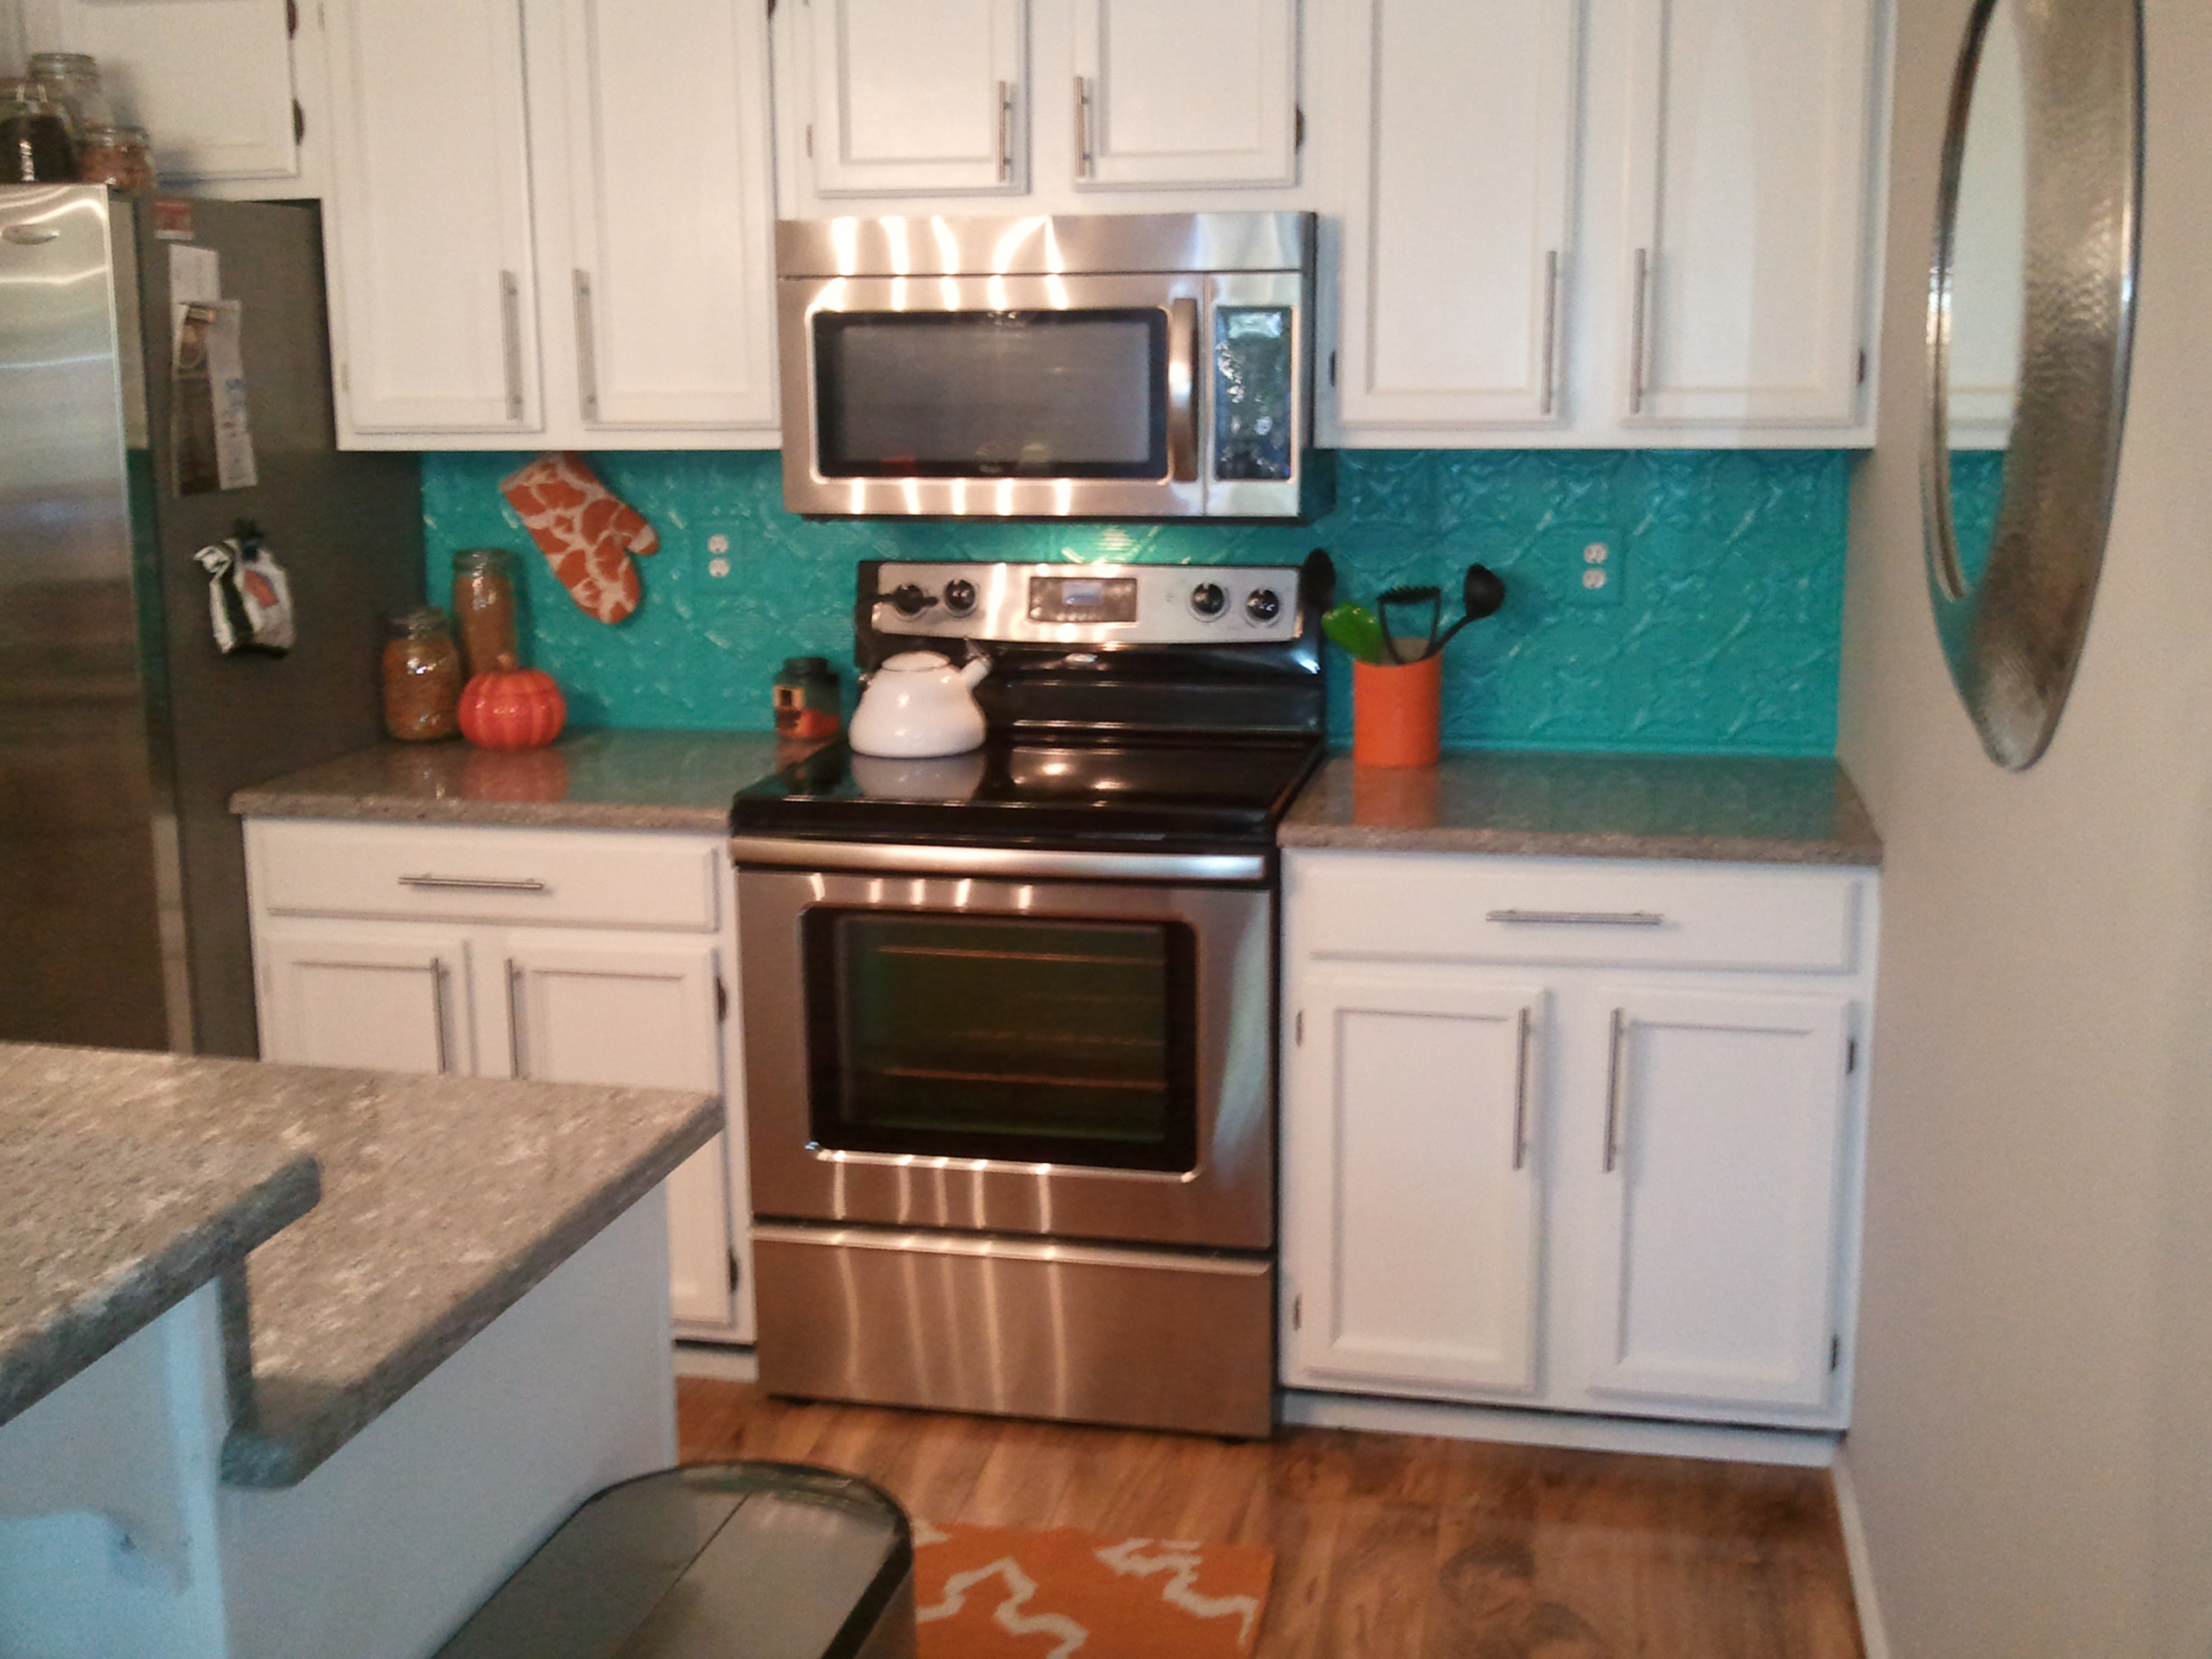 ceiling design photos ceiling picture gallery 103 tinmetal kitchen transformed with decorative ceiling tile backsplash